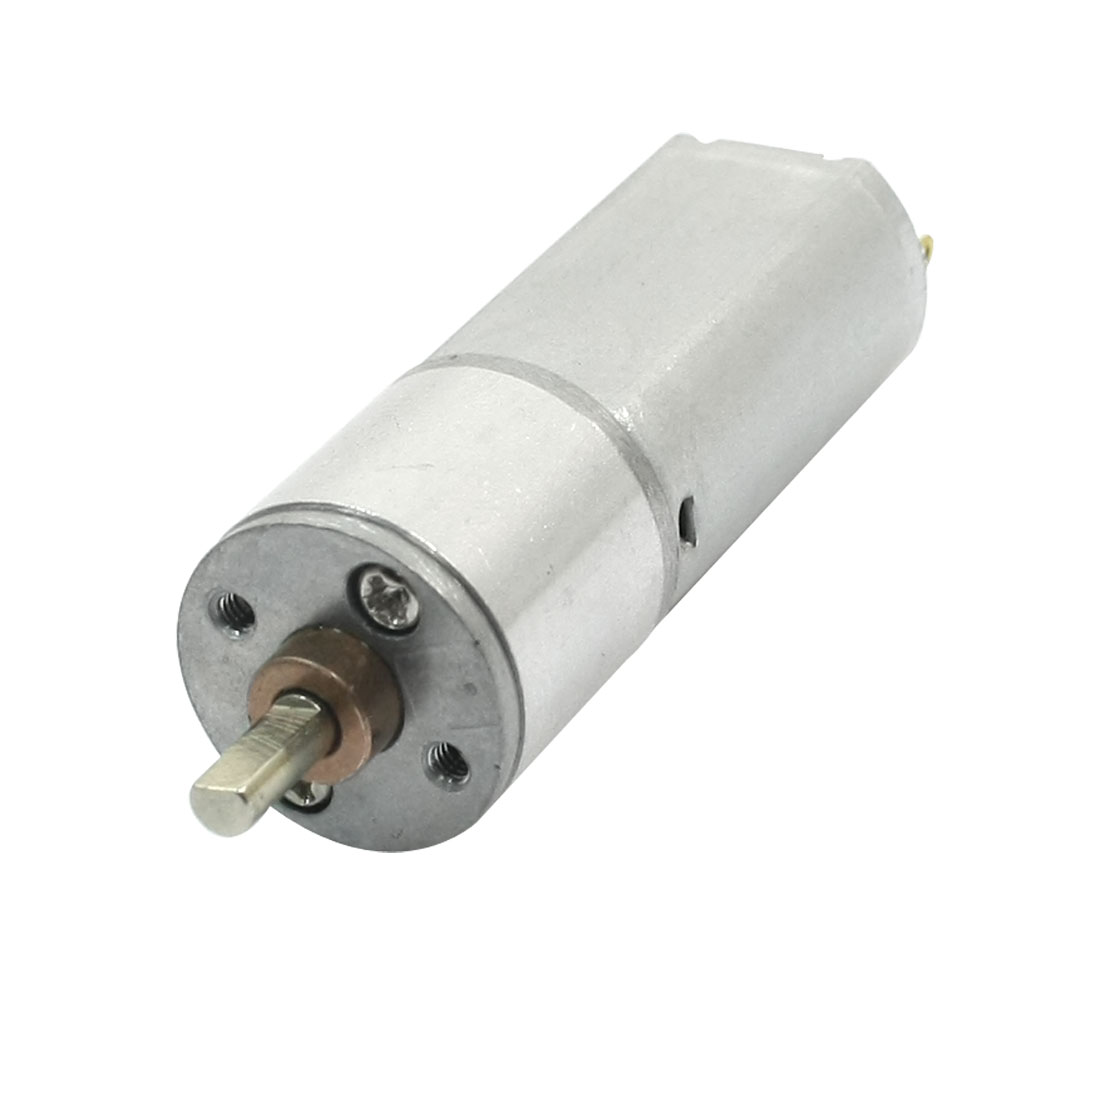 3mm Dia Drive Shaft 50rpm Output High Torque Rotary Speed Reduce Cylinder Shape Electric Geared Box Motor DC6V